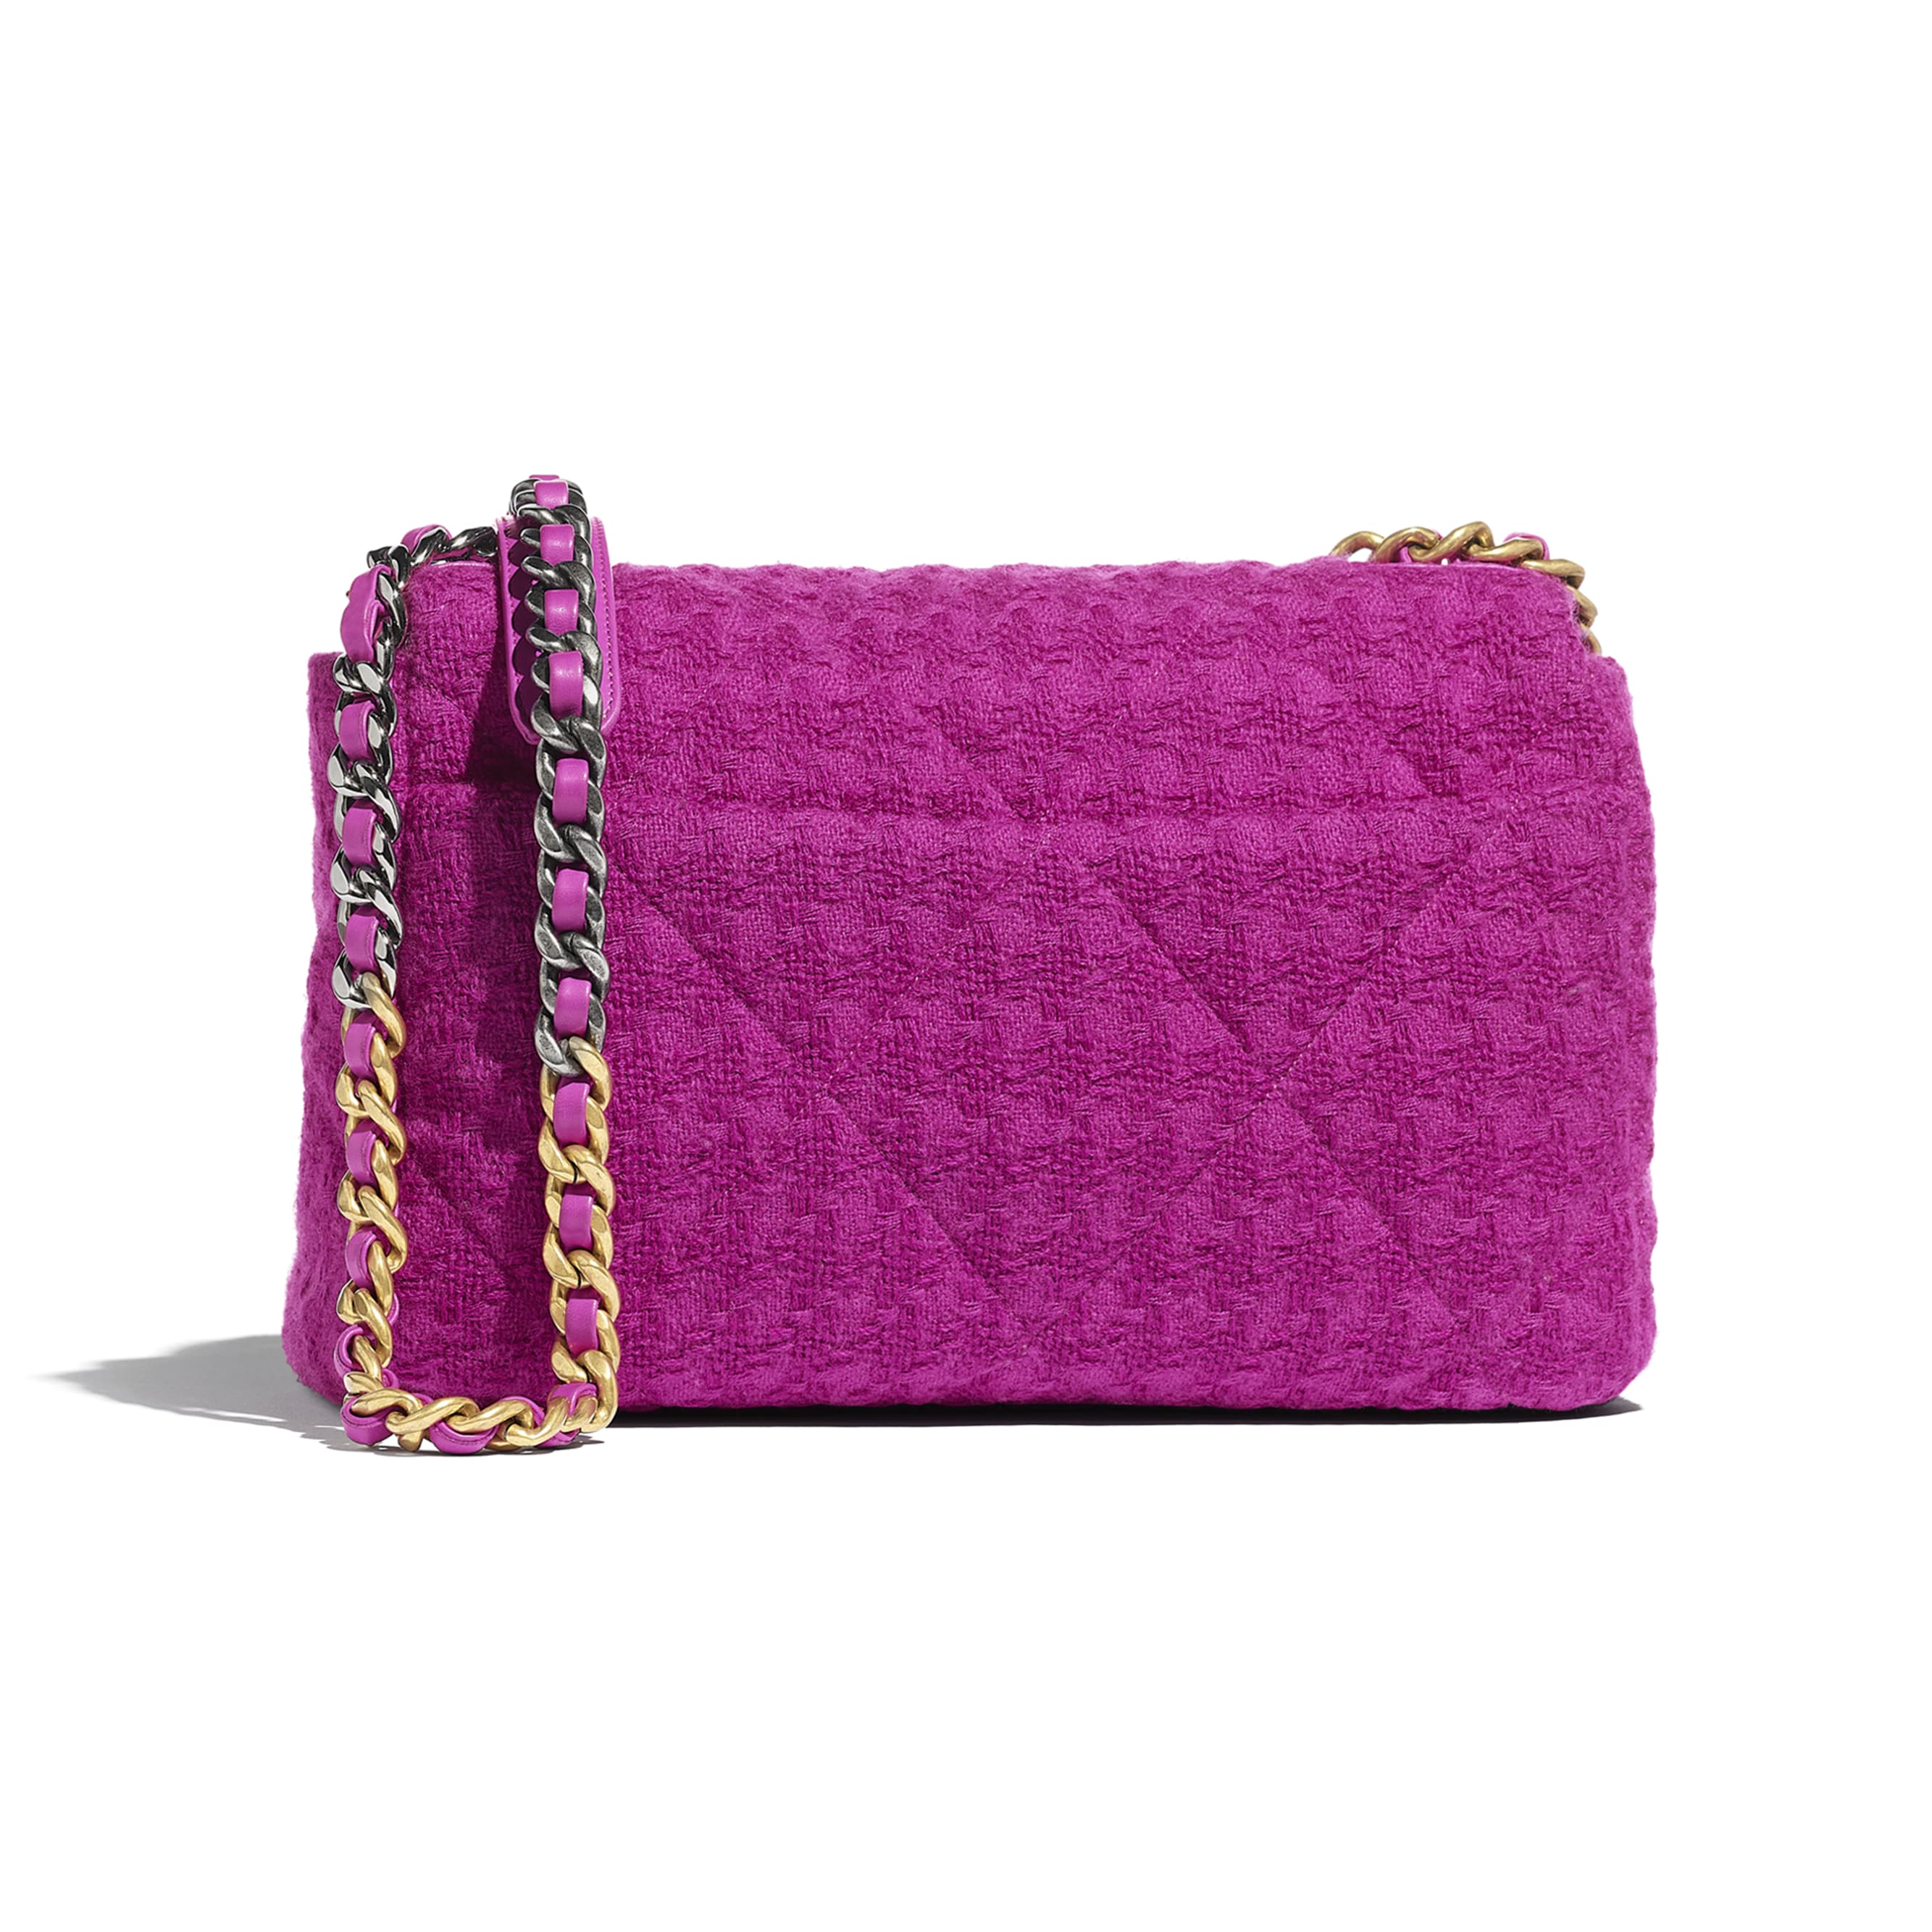 CHANEL 19 Large Flap Bag - Fuchsia - Wool Tweed, Gold-Tone, Silver-Tone & Ruthenium-Finish Metal - Alternative view - see standard sized version